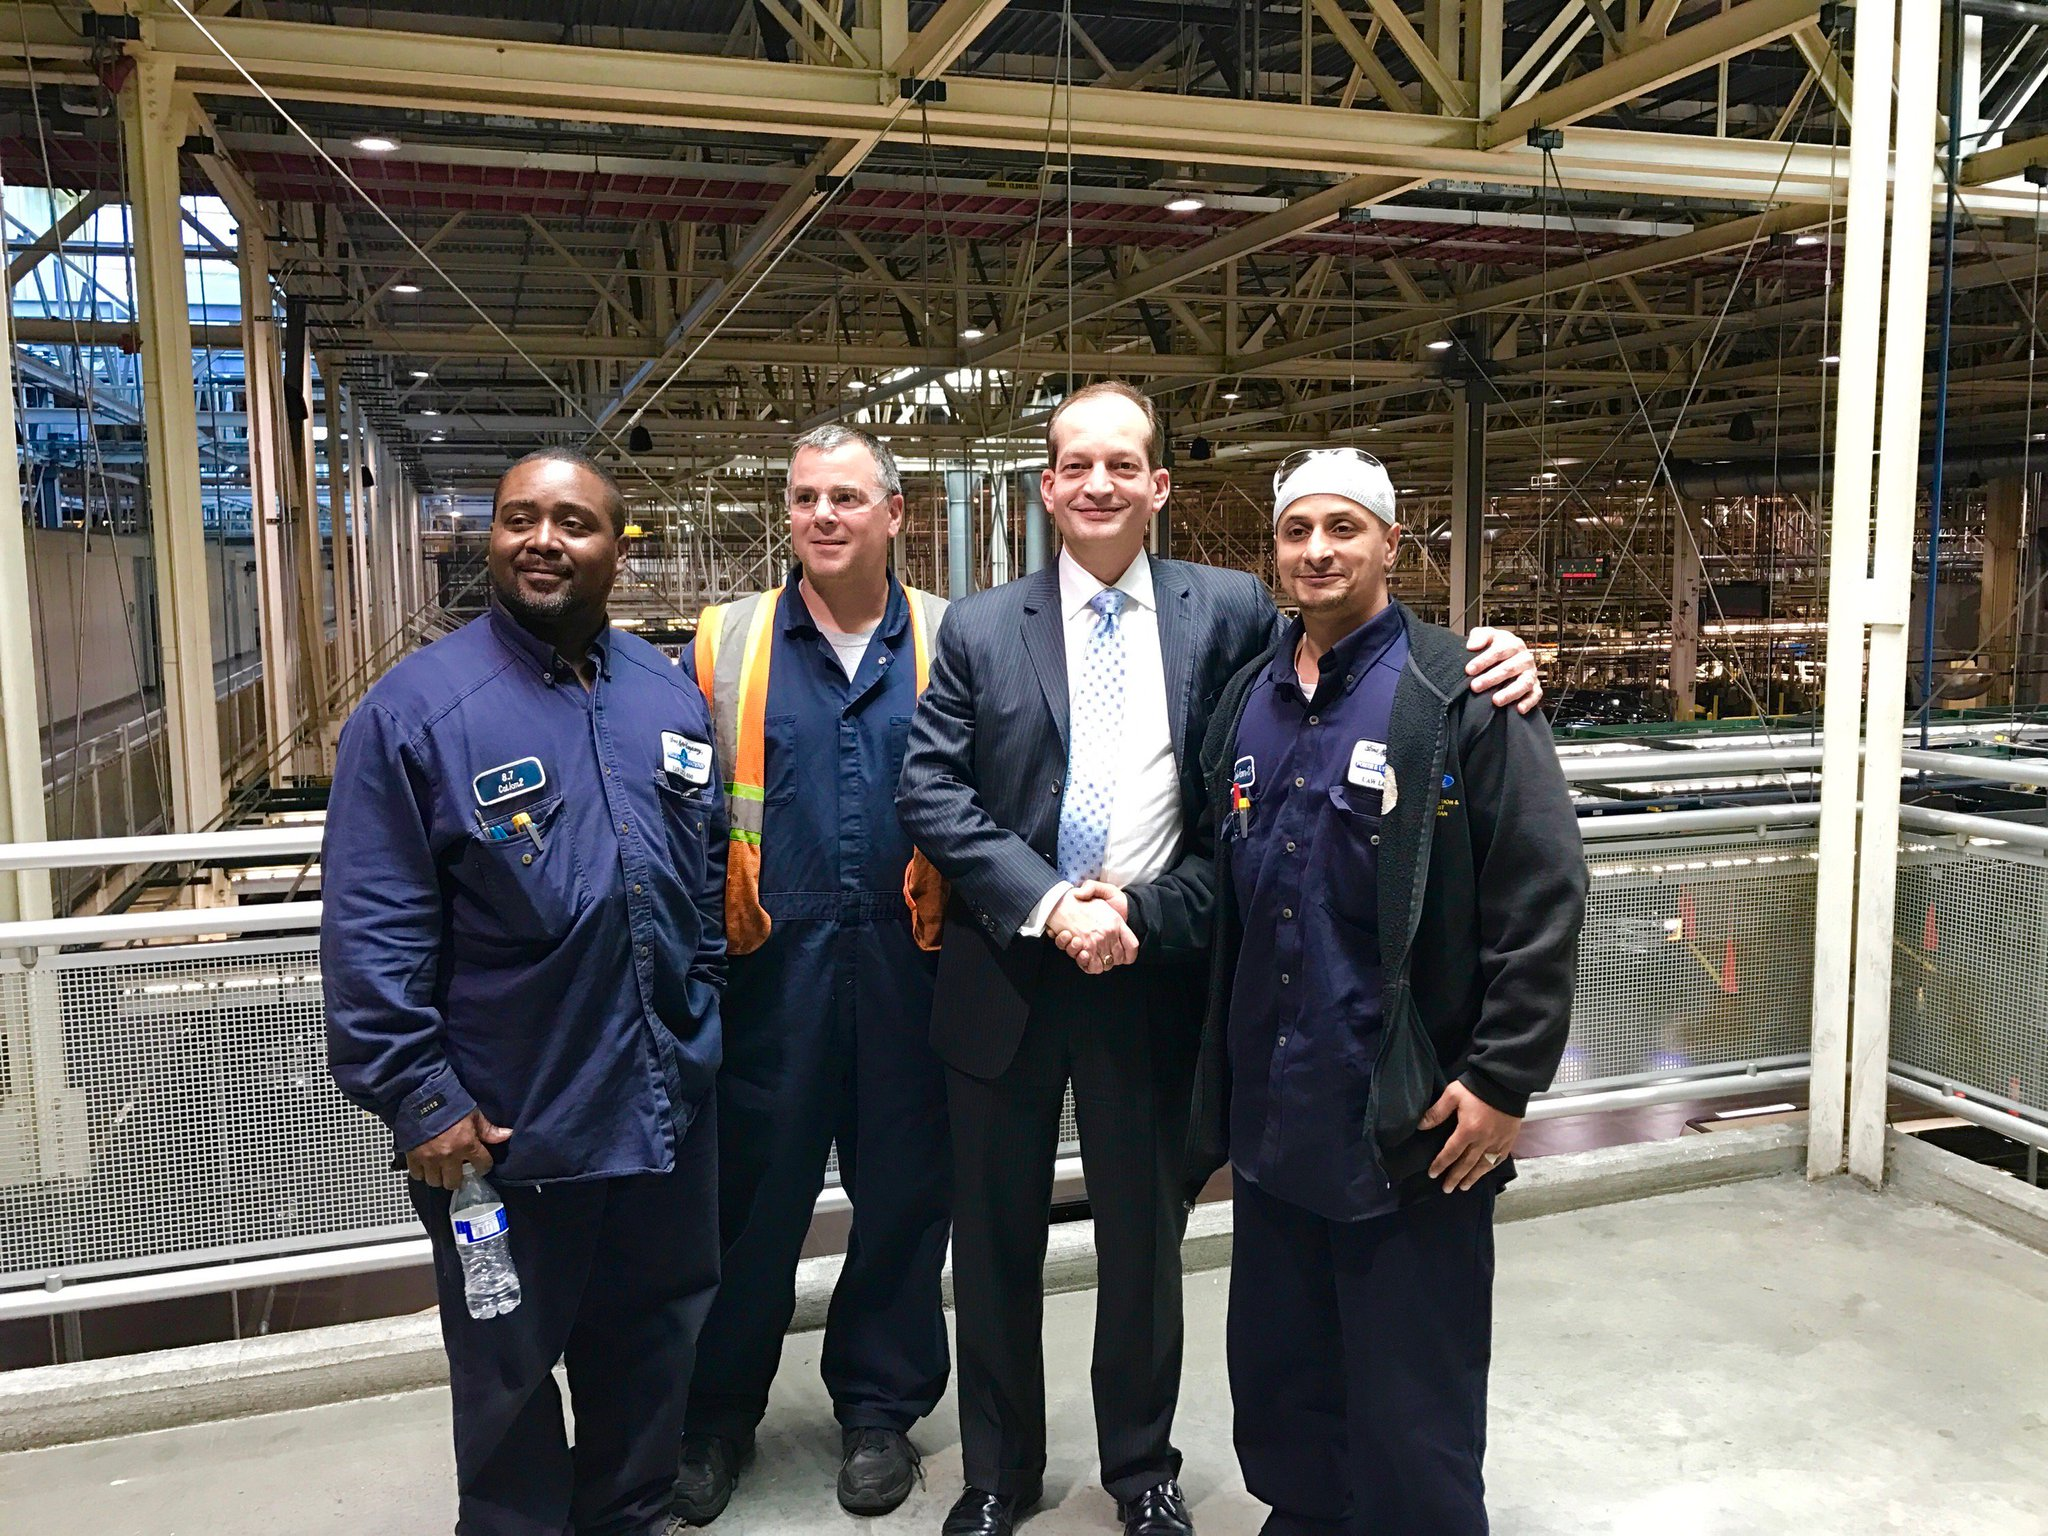 Had the opportunity to meet three great Michiganders & @Ford #electrical apprentices Waleed Mohamed, Marlo Hudgins, & Geoffrey Dherin. https://t.co/e6t2PnXu0S